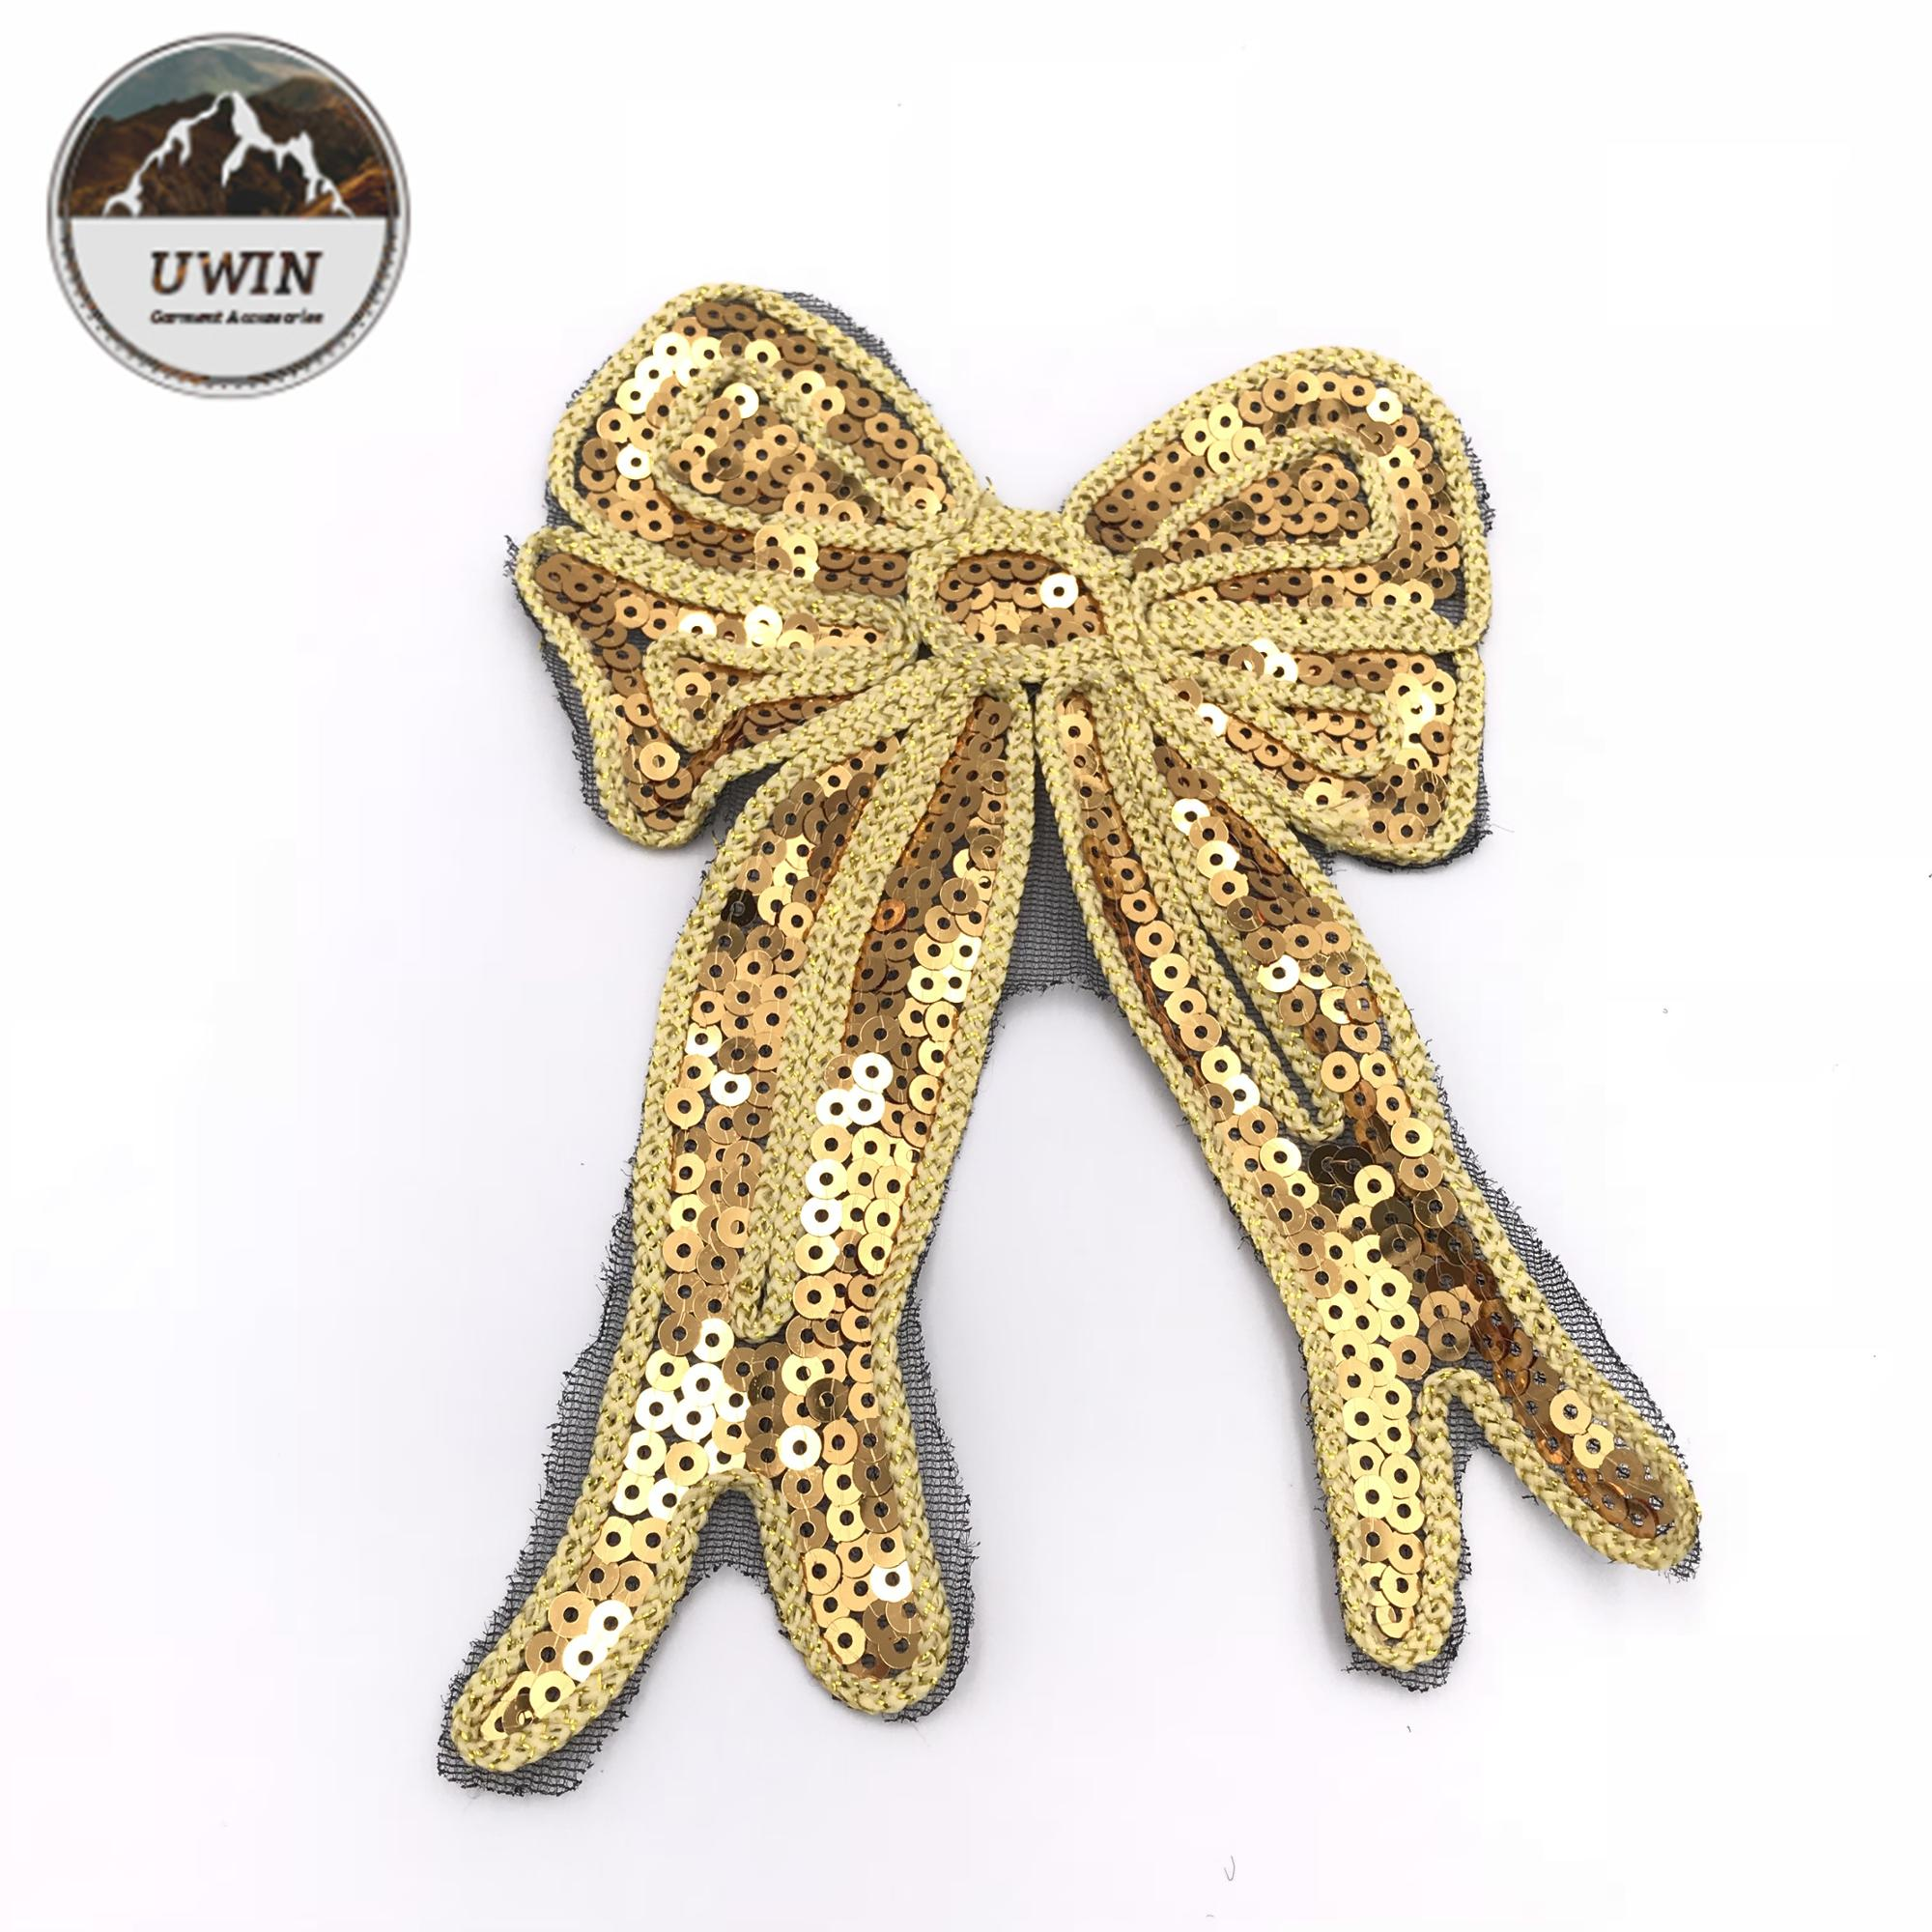 Assez D'or Arc Noeud Corde Brodé À Paillettes Patch pour Vente Fantastique Conception OEM Broderie Patches